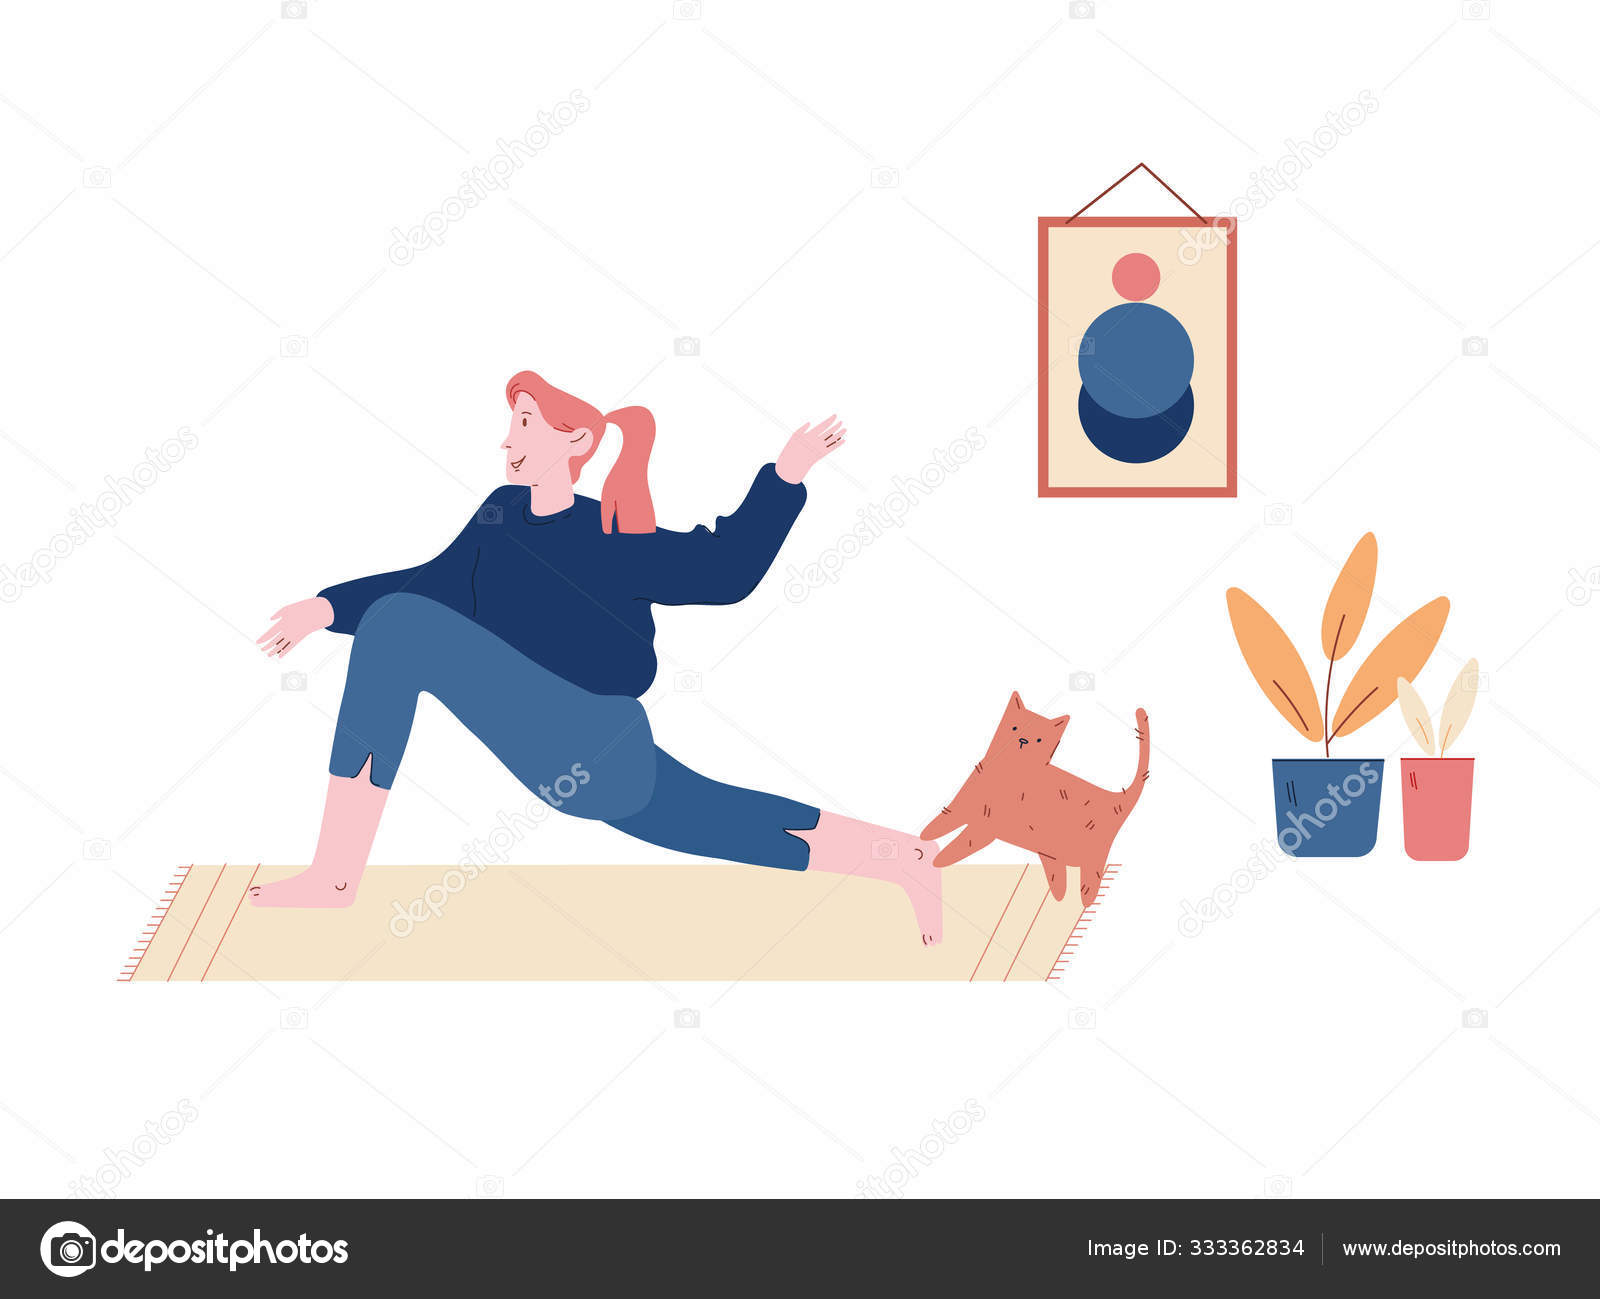 Young Woman Sitting On Floor With Cat In Room Interior Doing Stretching Exercises For Healthy Body